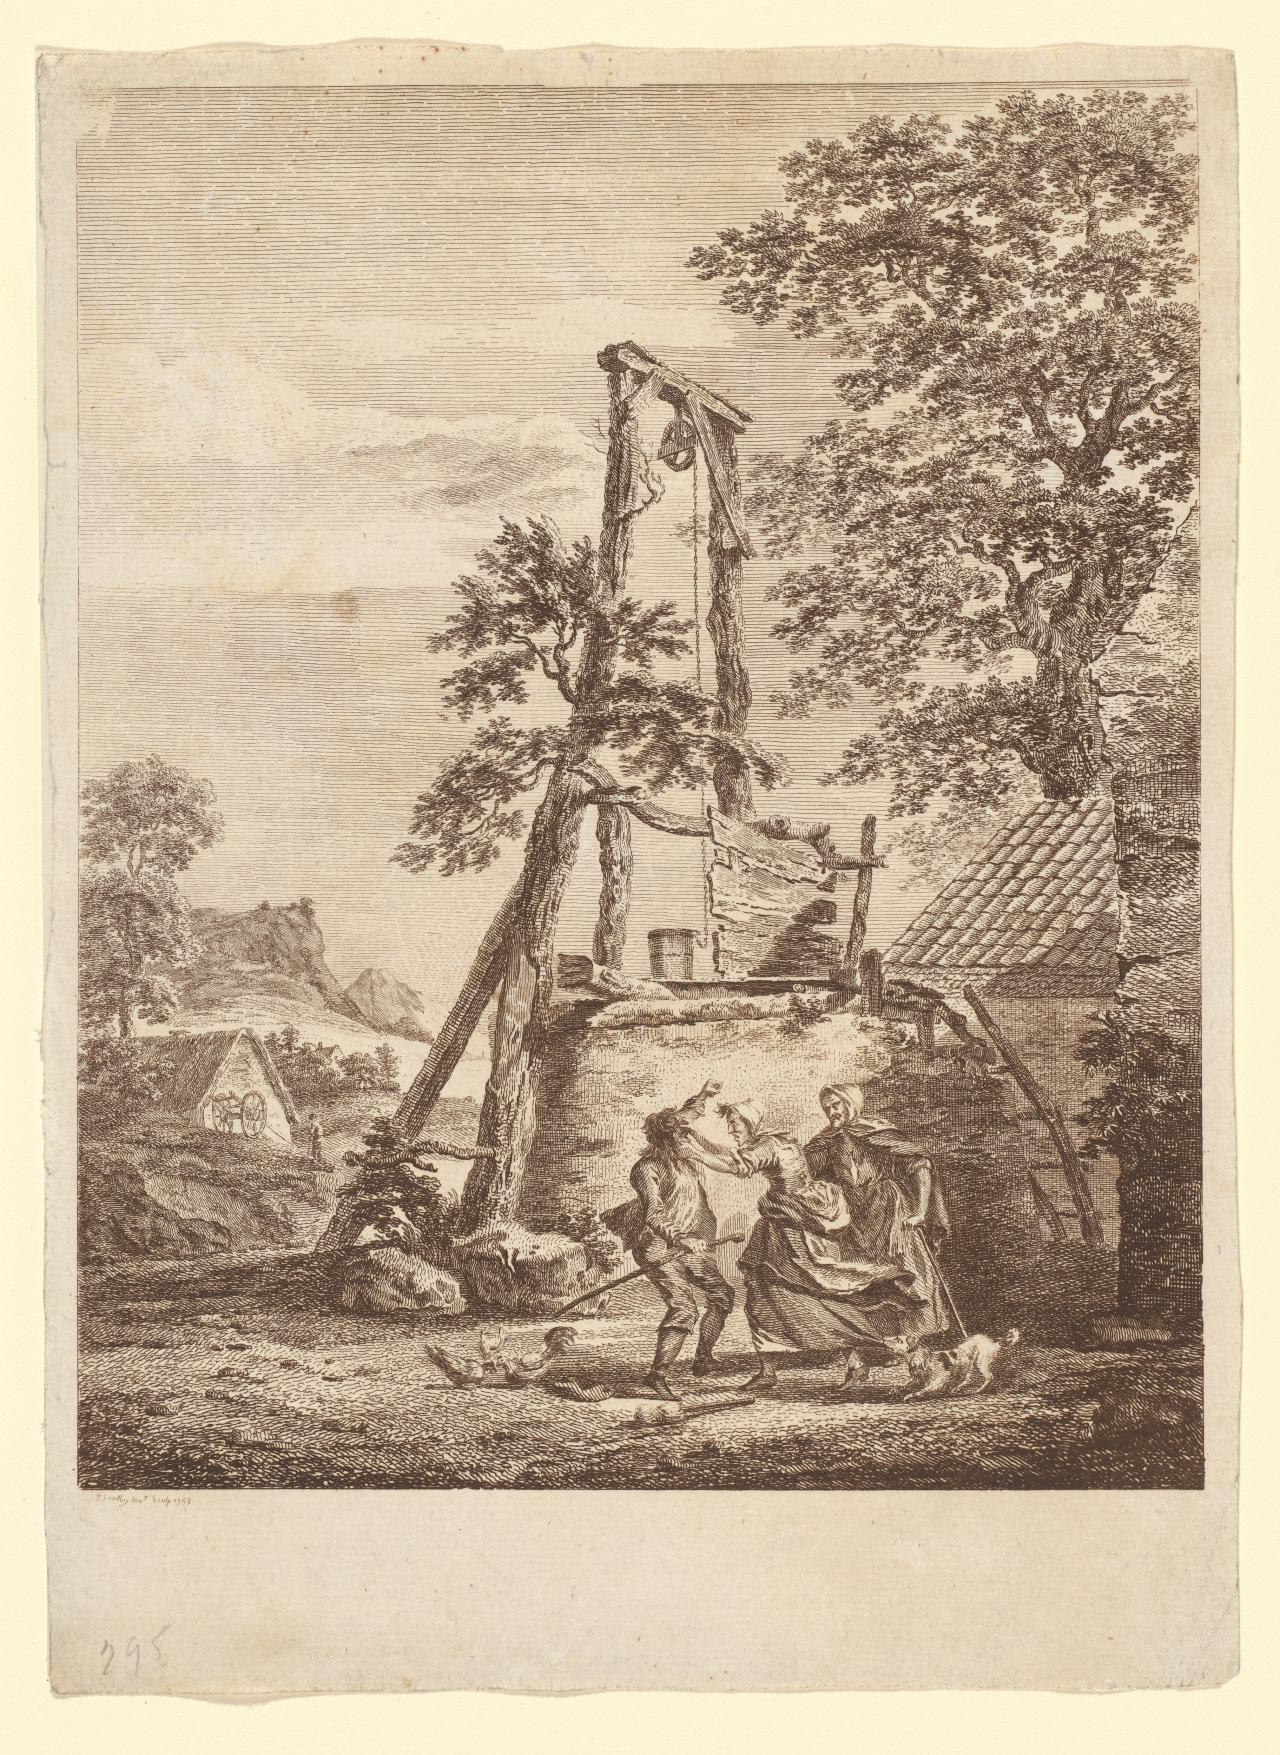 The Well - Villagers in Dispute